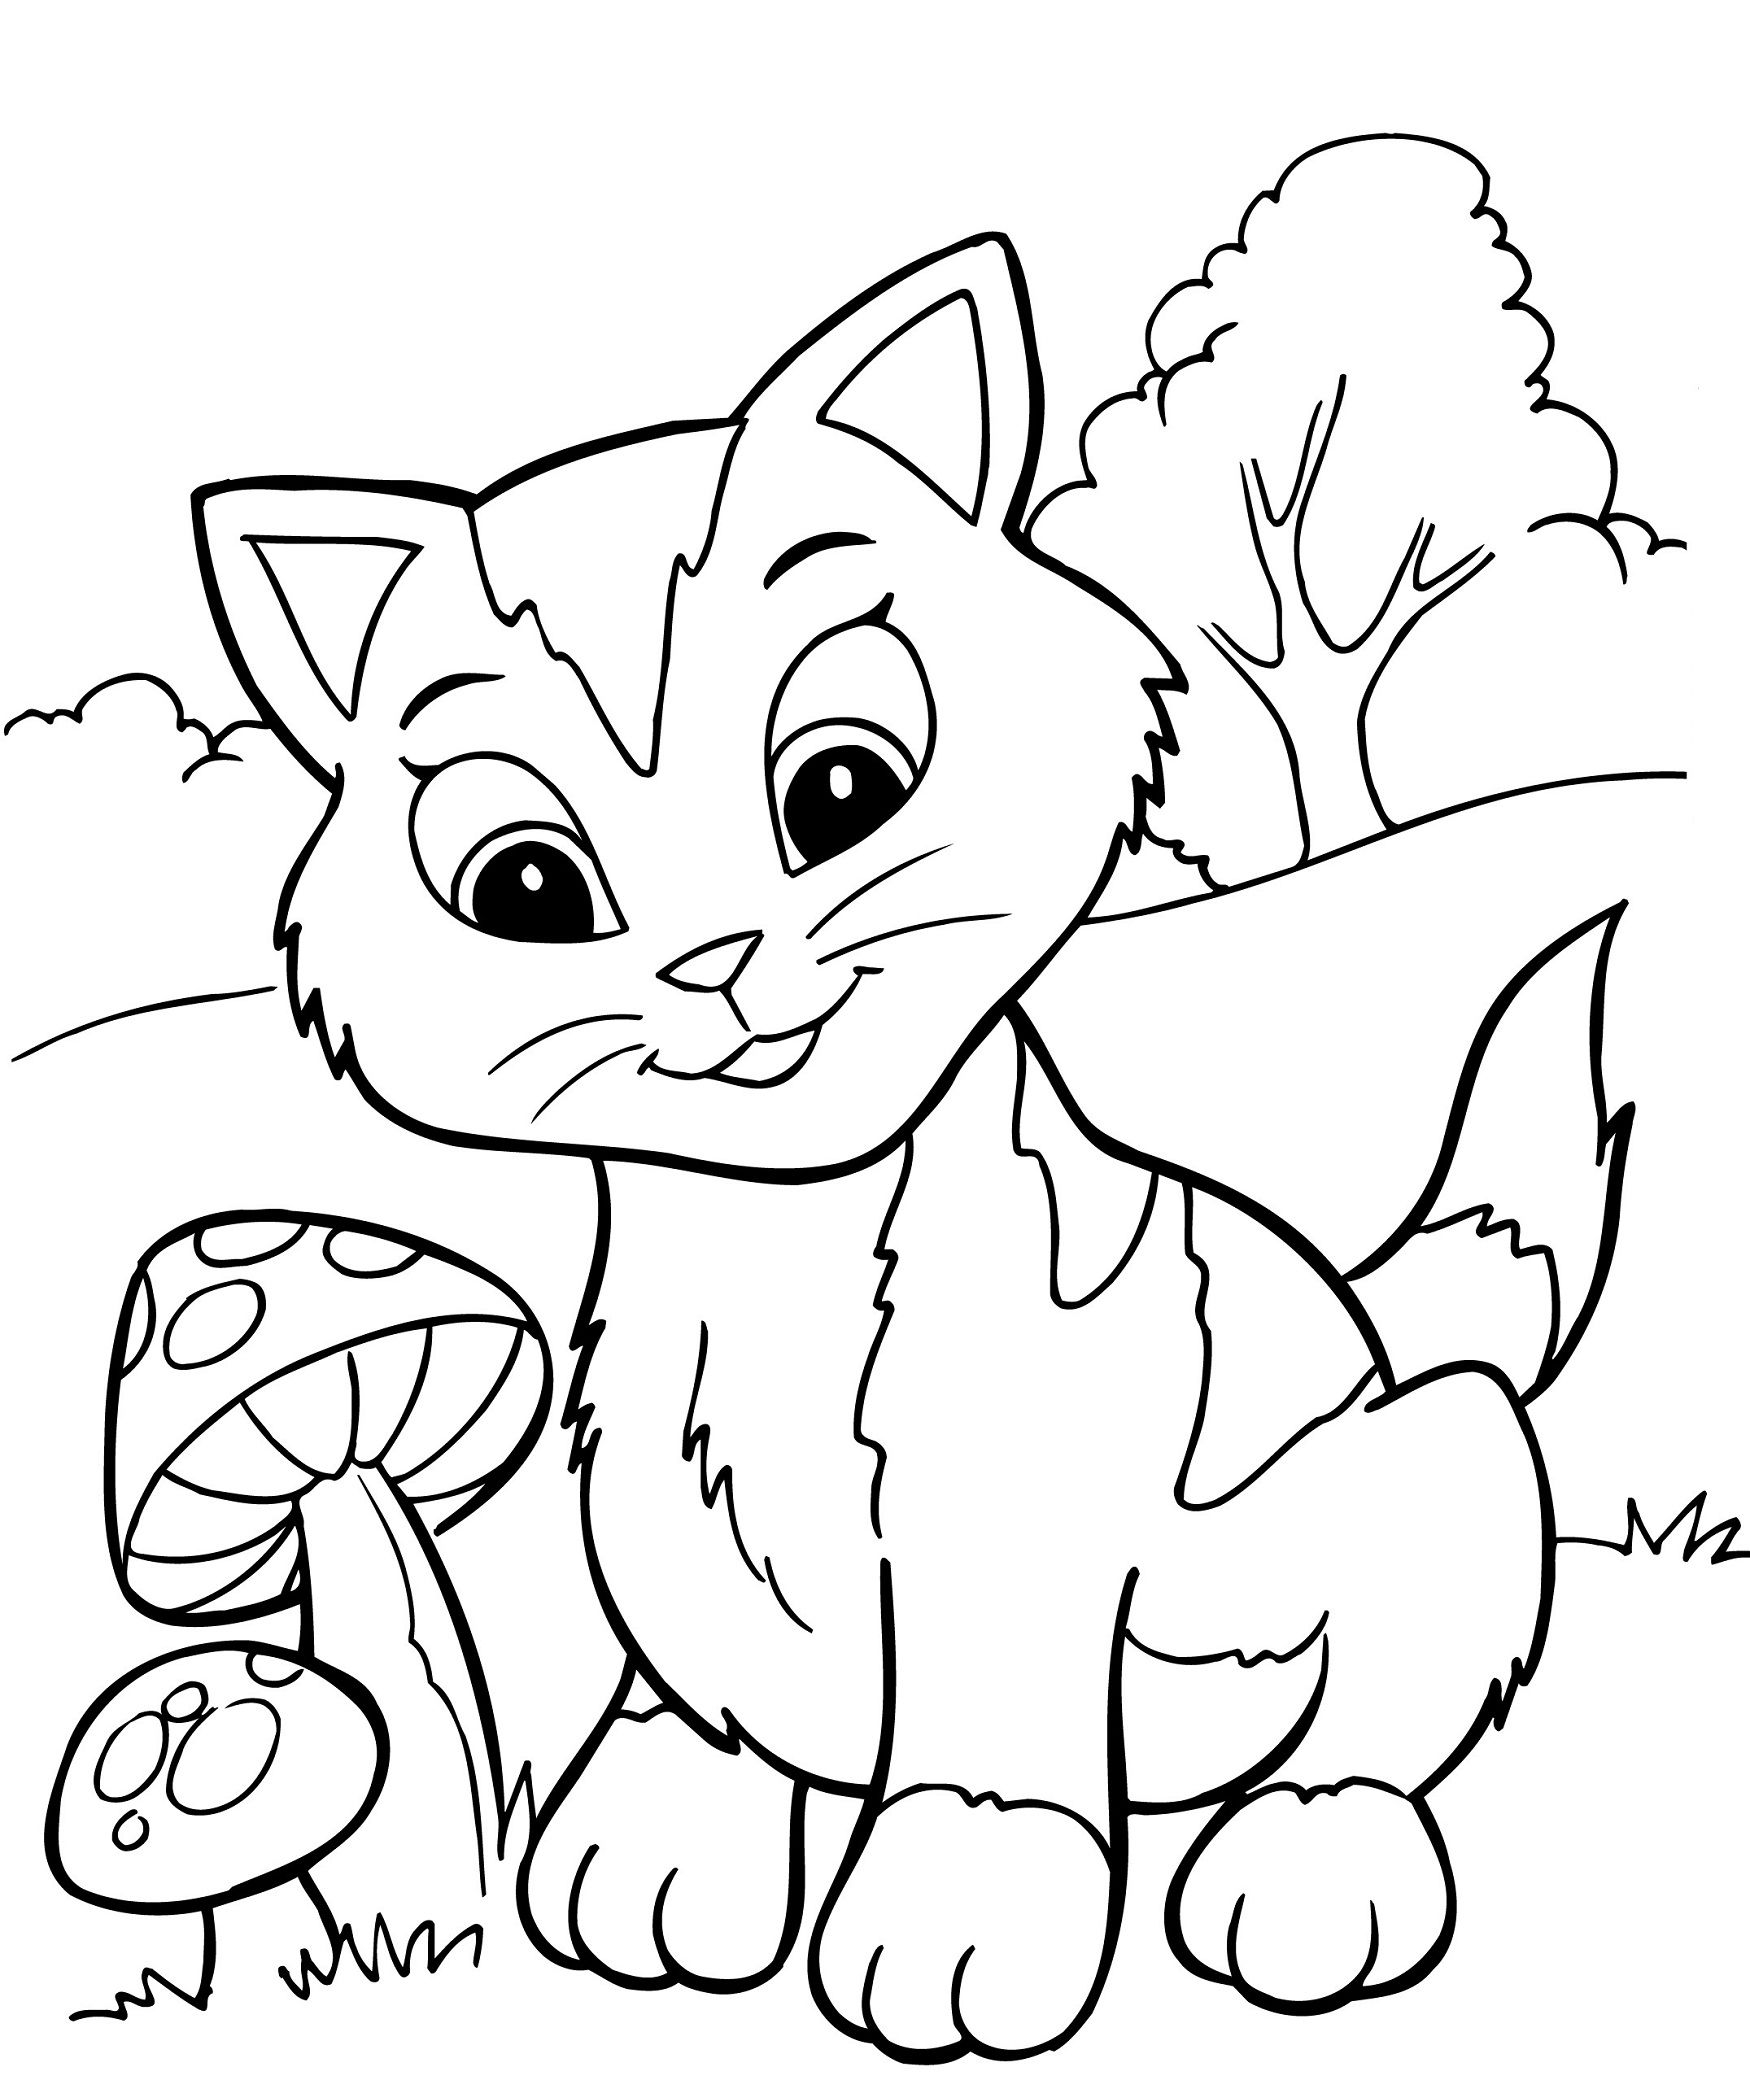 kitten coloring coloring pages cats and kittens coloring pages free and kitten coloring